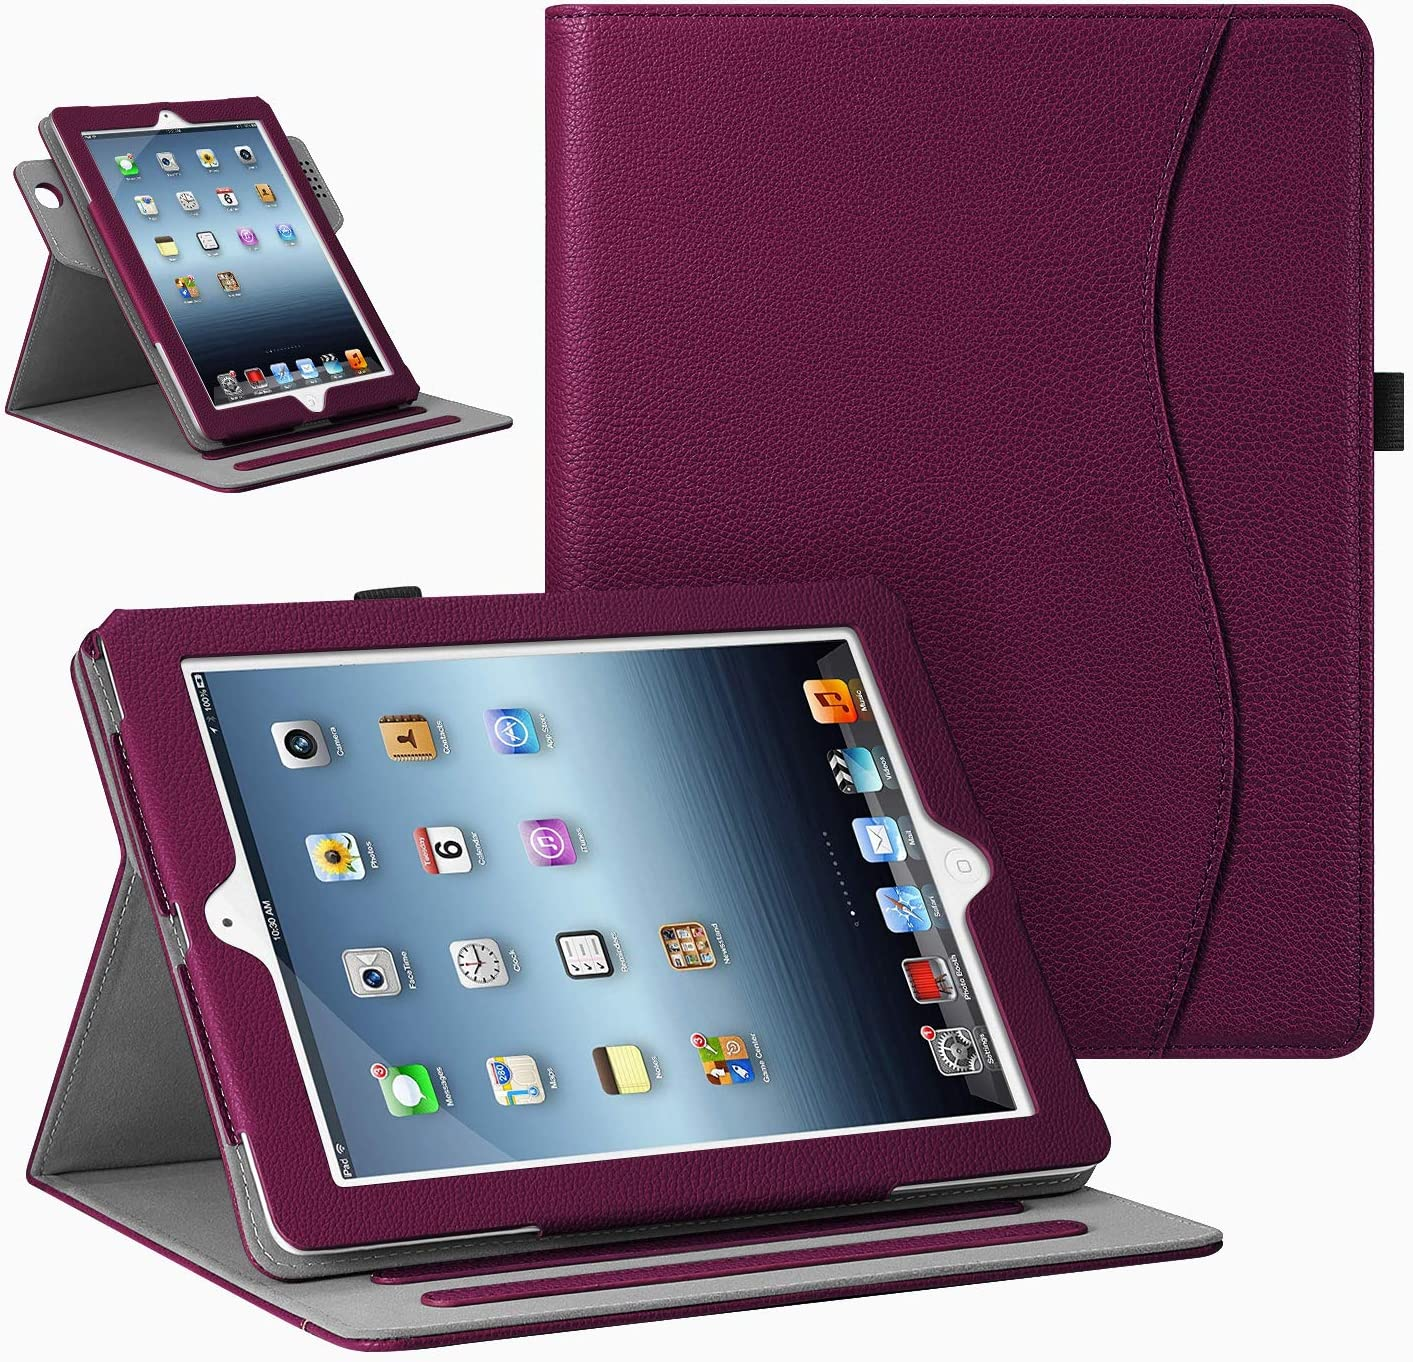 Fintie Case for iPad 4 3 2 (Old Model) - [Corner Protection] 360 Degree Rotating Multi-Angle Stand Cover w/Pocket, Auto Sleep Wake for iPad 2/3, iPad 4th Gen Retina Display 9.7 inch Tablet, Purple